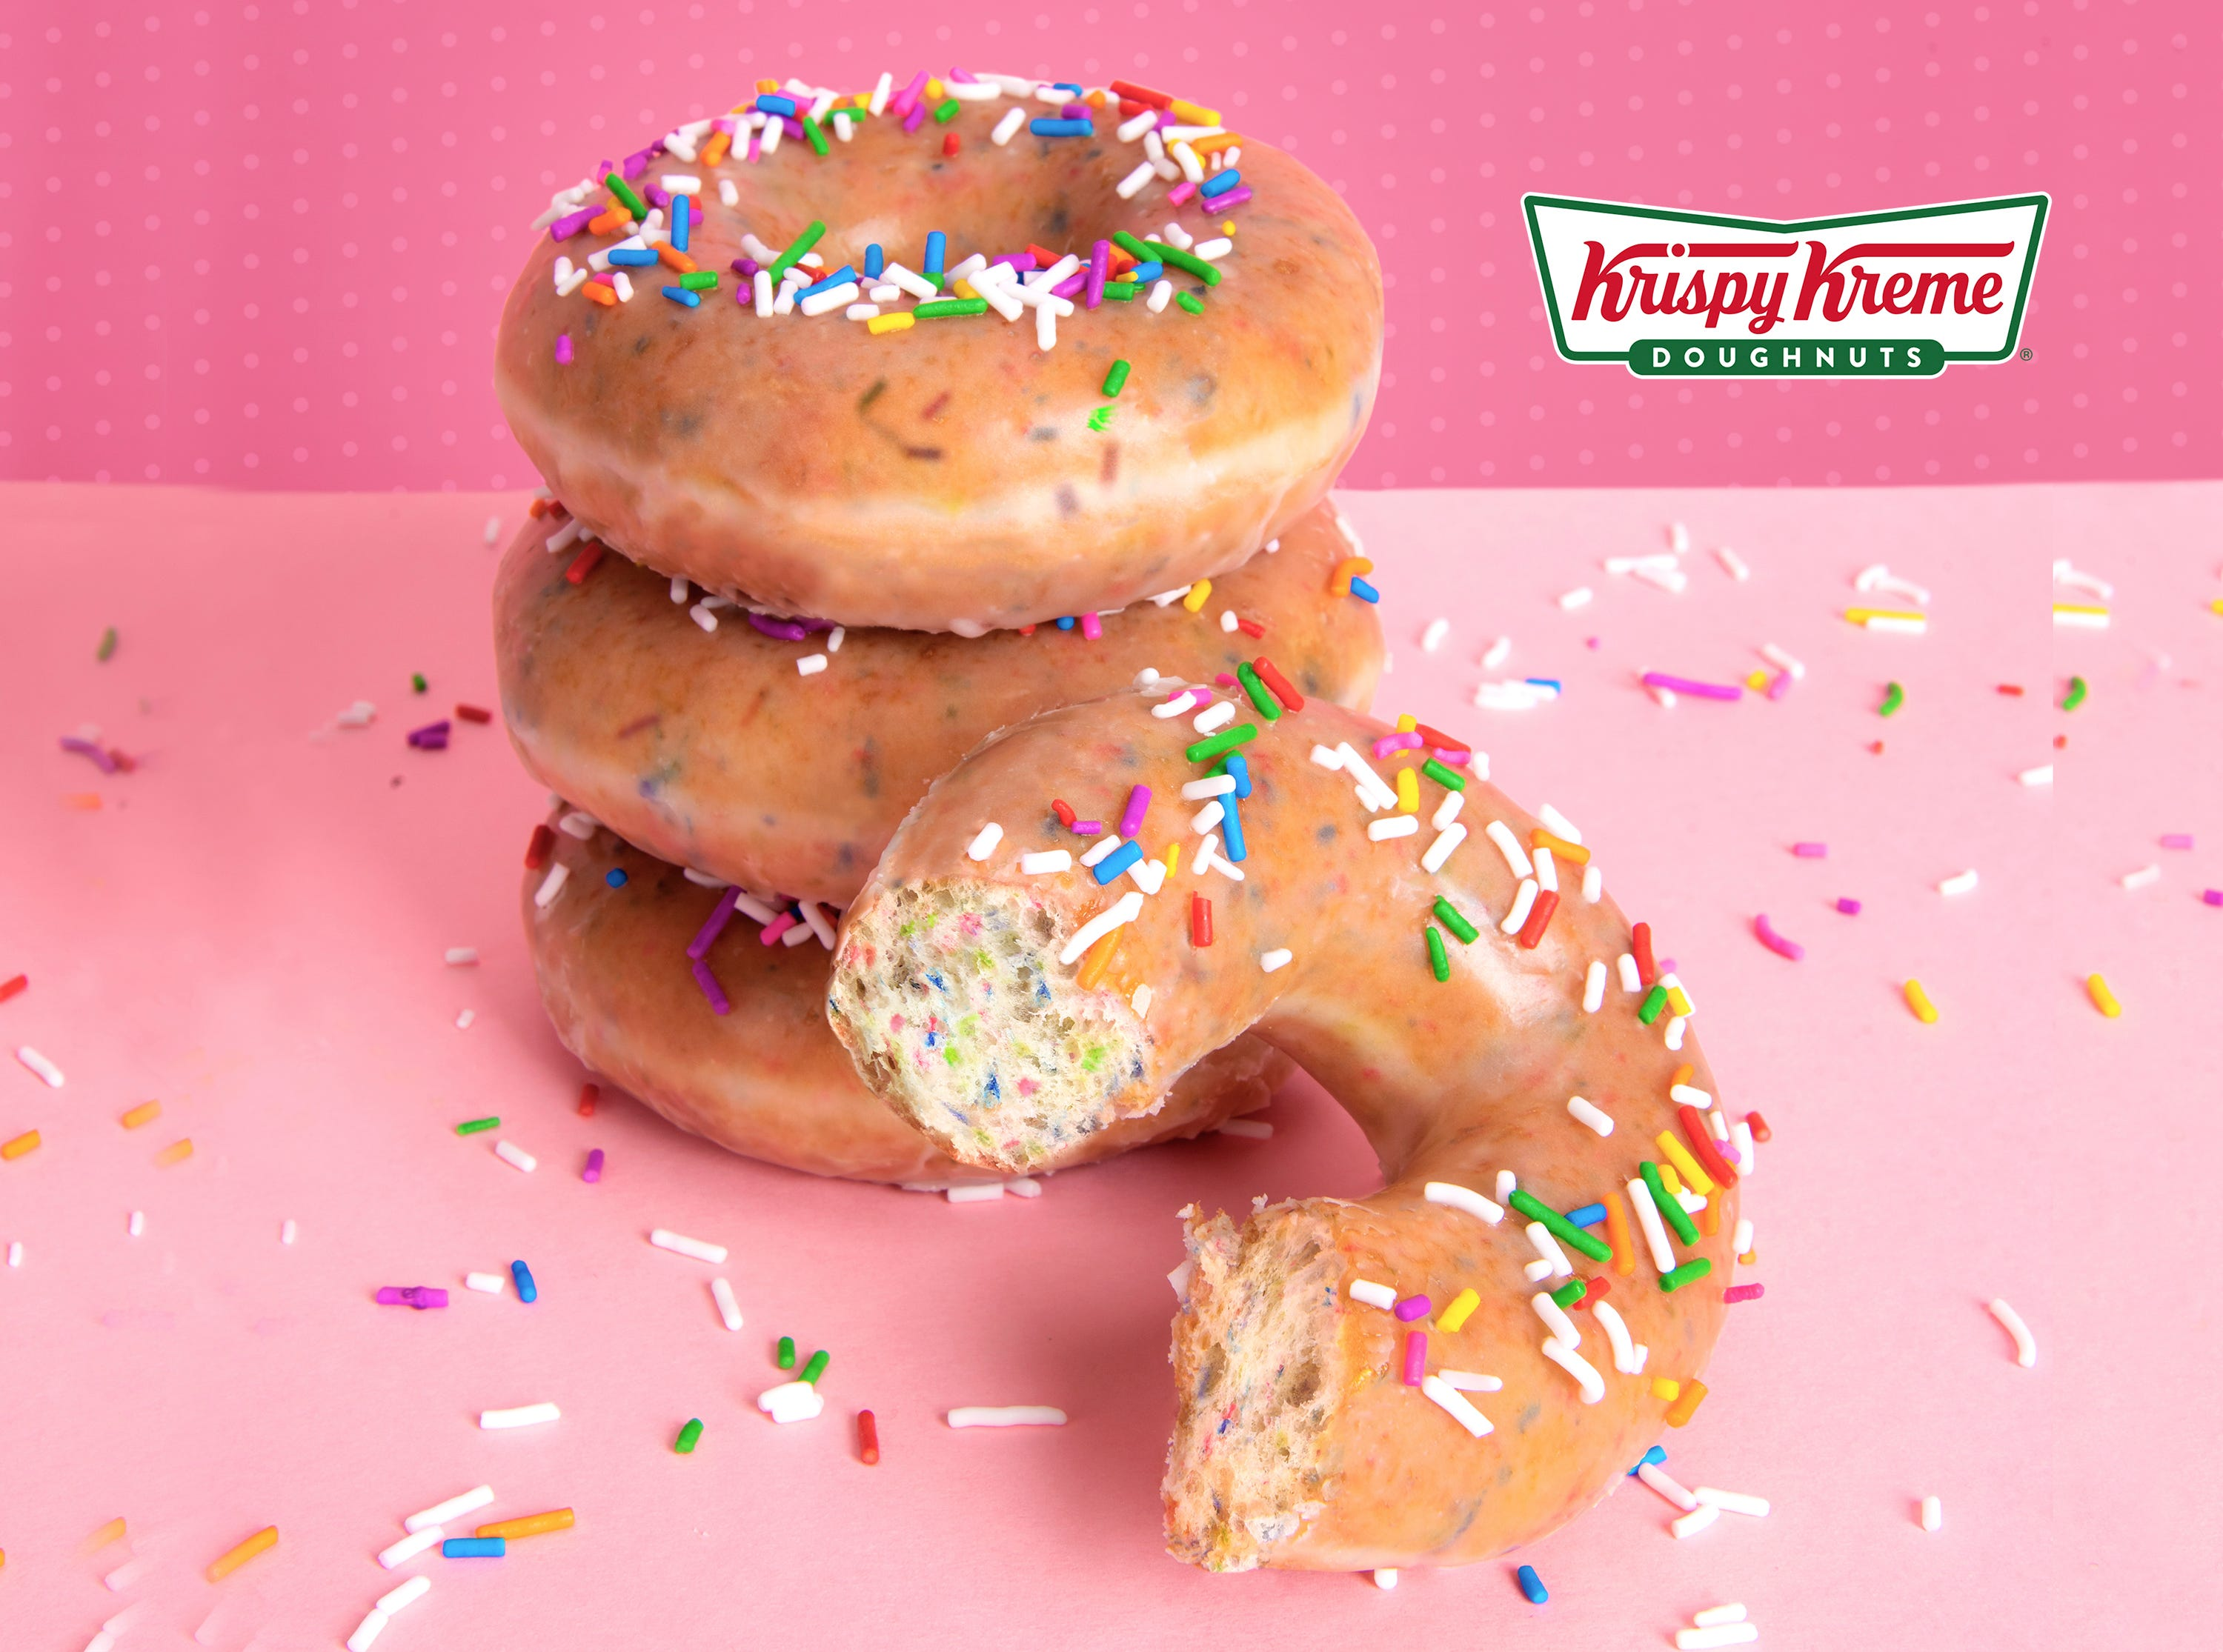 krispy kreme 1 essay Krispy kreme was debt-free by 1989 and their ipo left them with a market capitalization of nearly $500 million in 2000 they appeared to be on the right track but, it seemed they were expanding too rapidly they allowed franchisees to place their stores in locations that were not favorable, resulting in the.